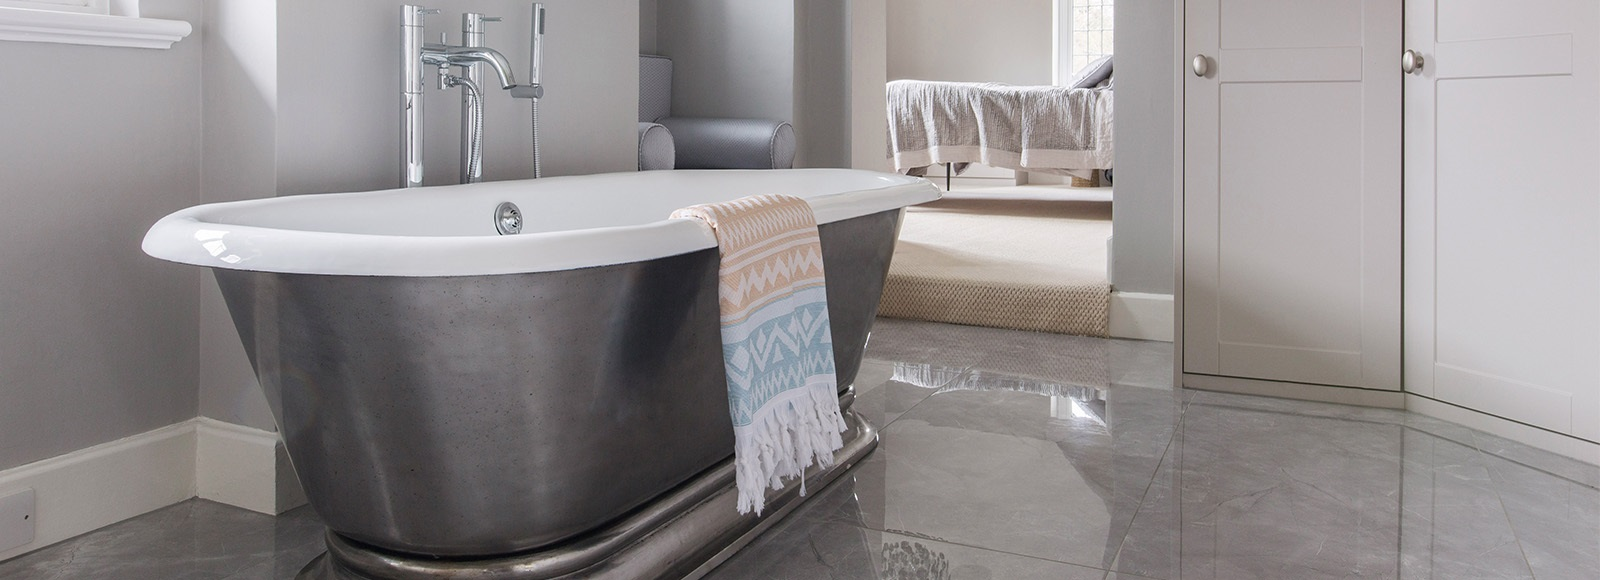 Hurlingham Roll Top Bath - Bespoke dressing room design with a cast iron roll top bath by Hurlingham.